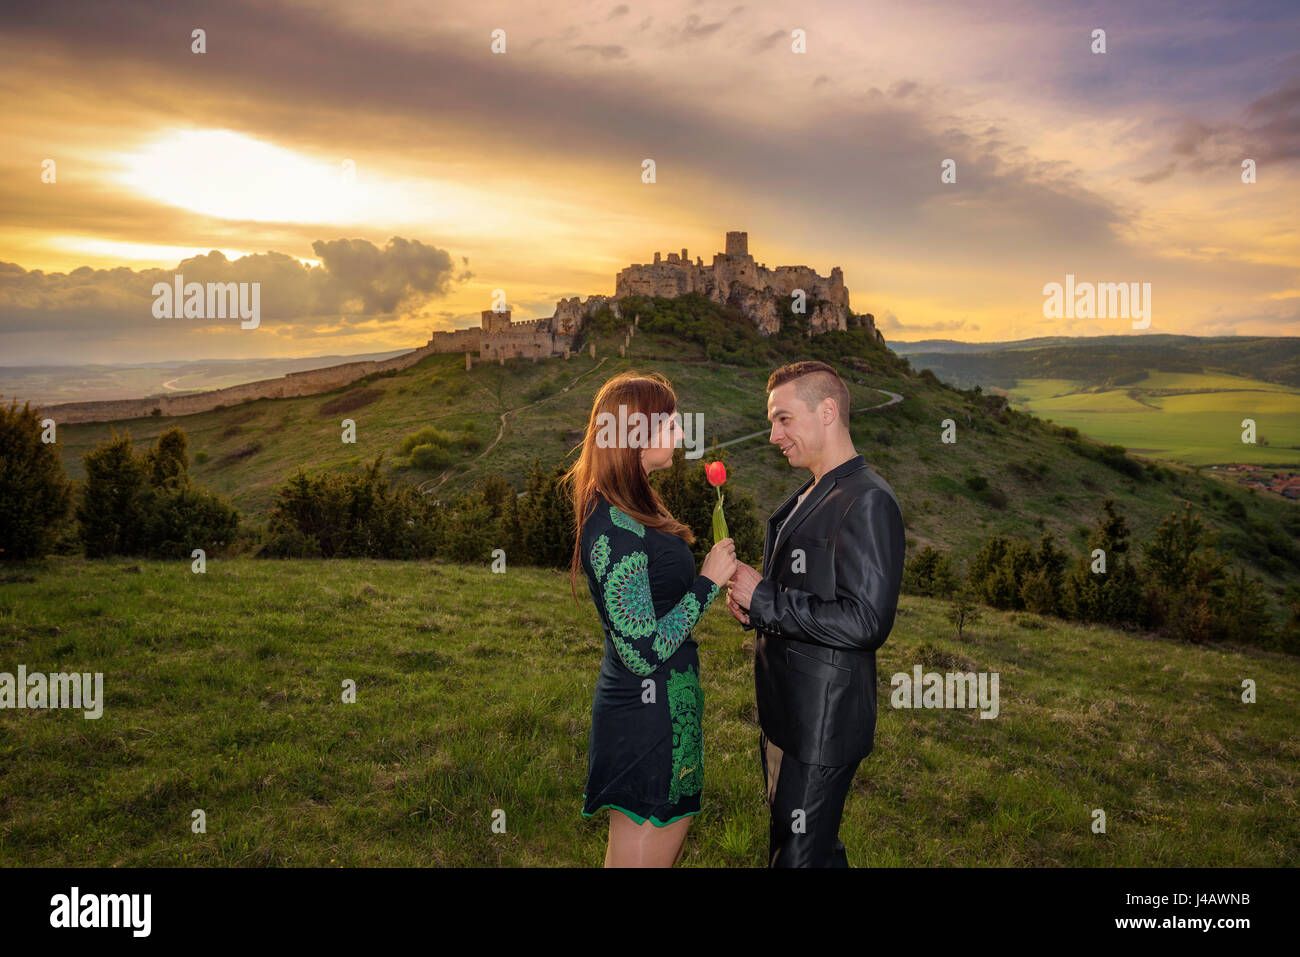 Young couple in love at sunset near a ruined castle. The man is giving a red tulip to his girlfriend. - Stock Image